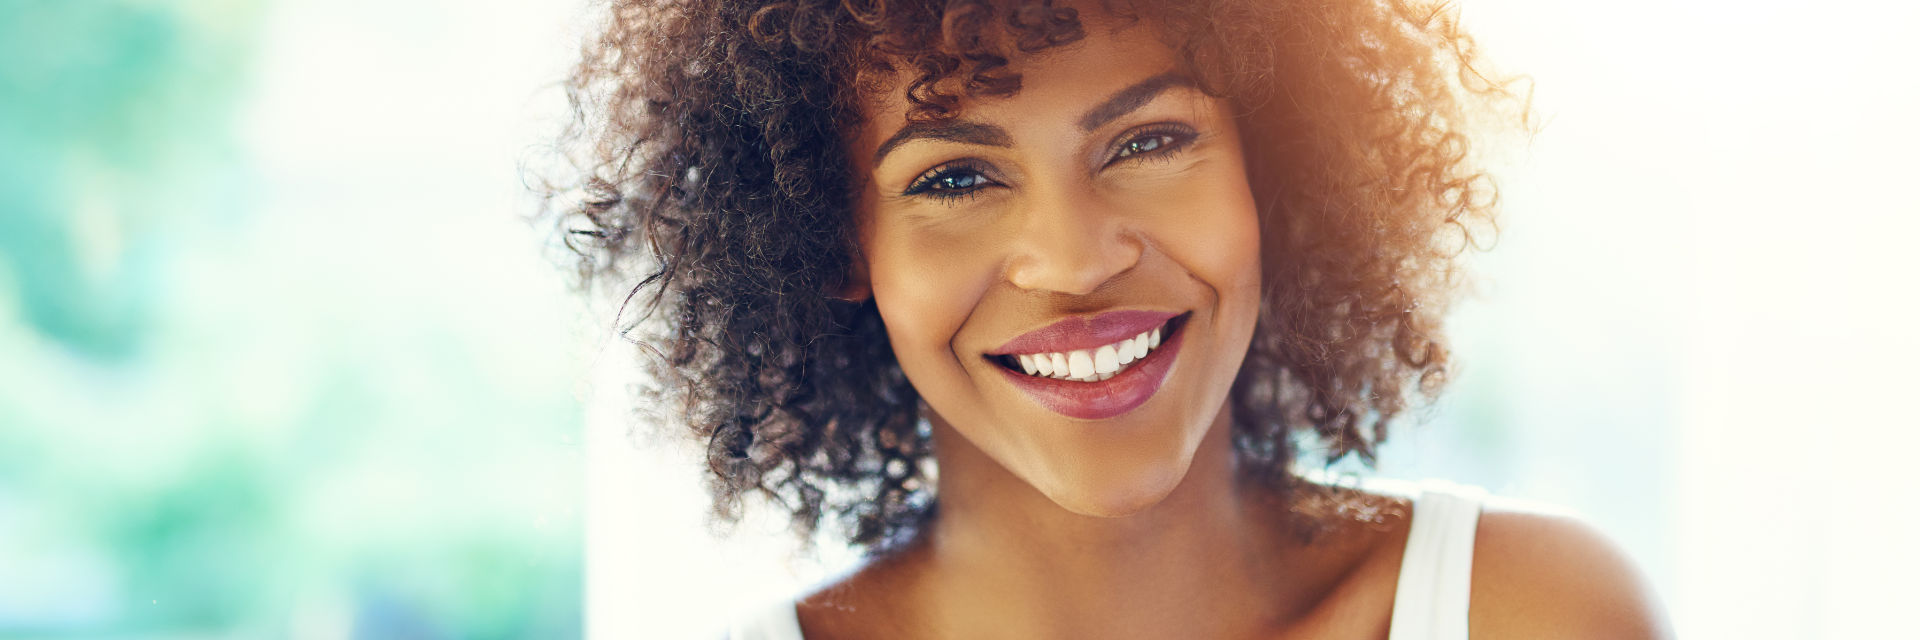 A beautiful middle-aged Afro-American woman showing her perfect teeth in her smile.